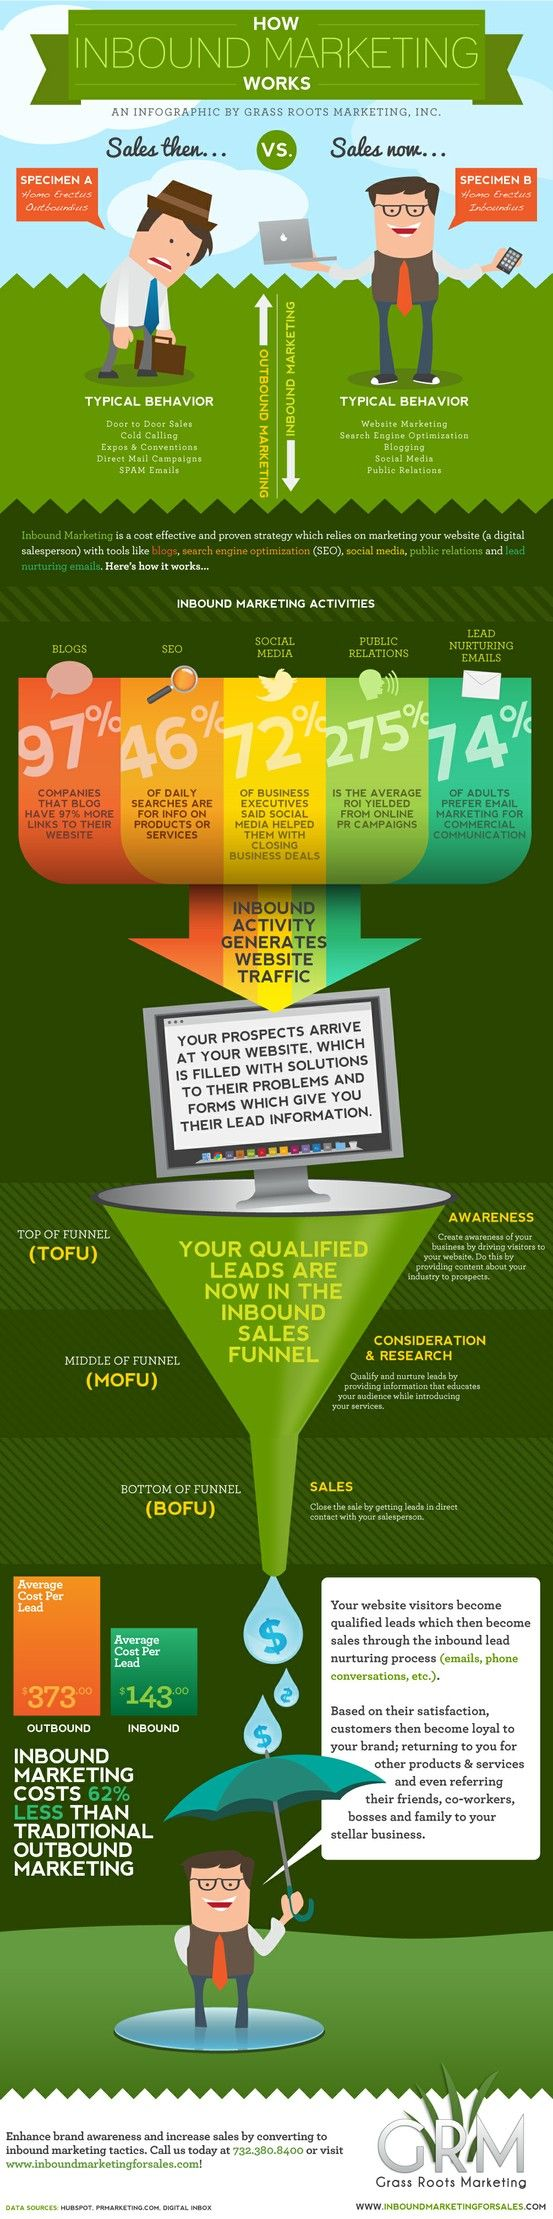 How inbound #marekting works #infographic  83oranges.com